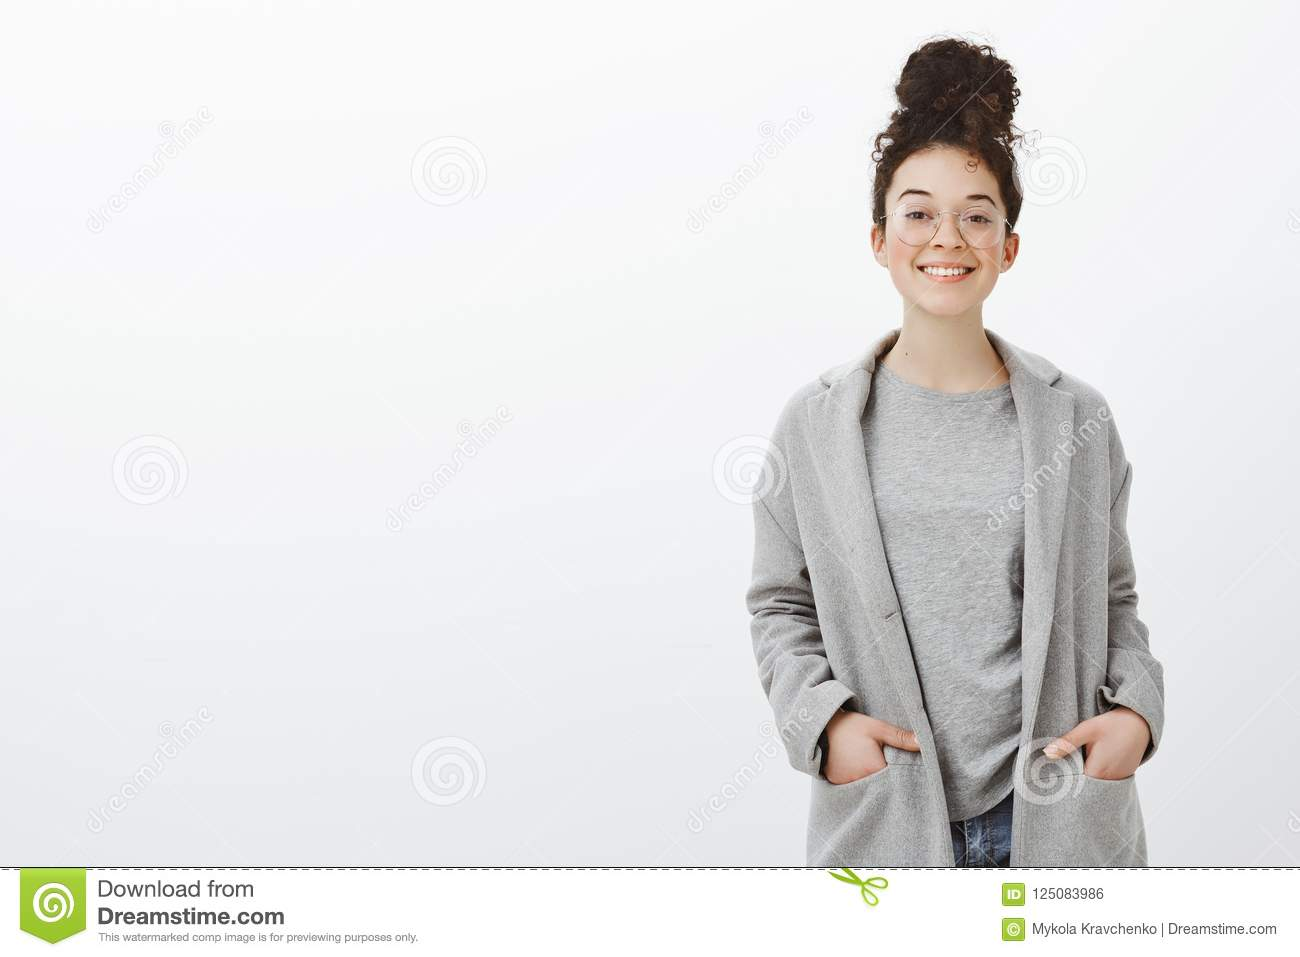 Portrait Of Confident Happy Good Looking Girl With Curly Hair Combed